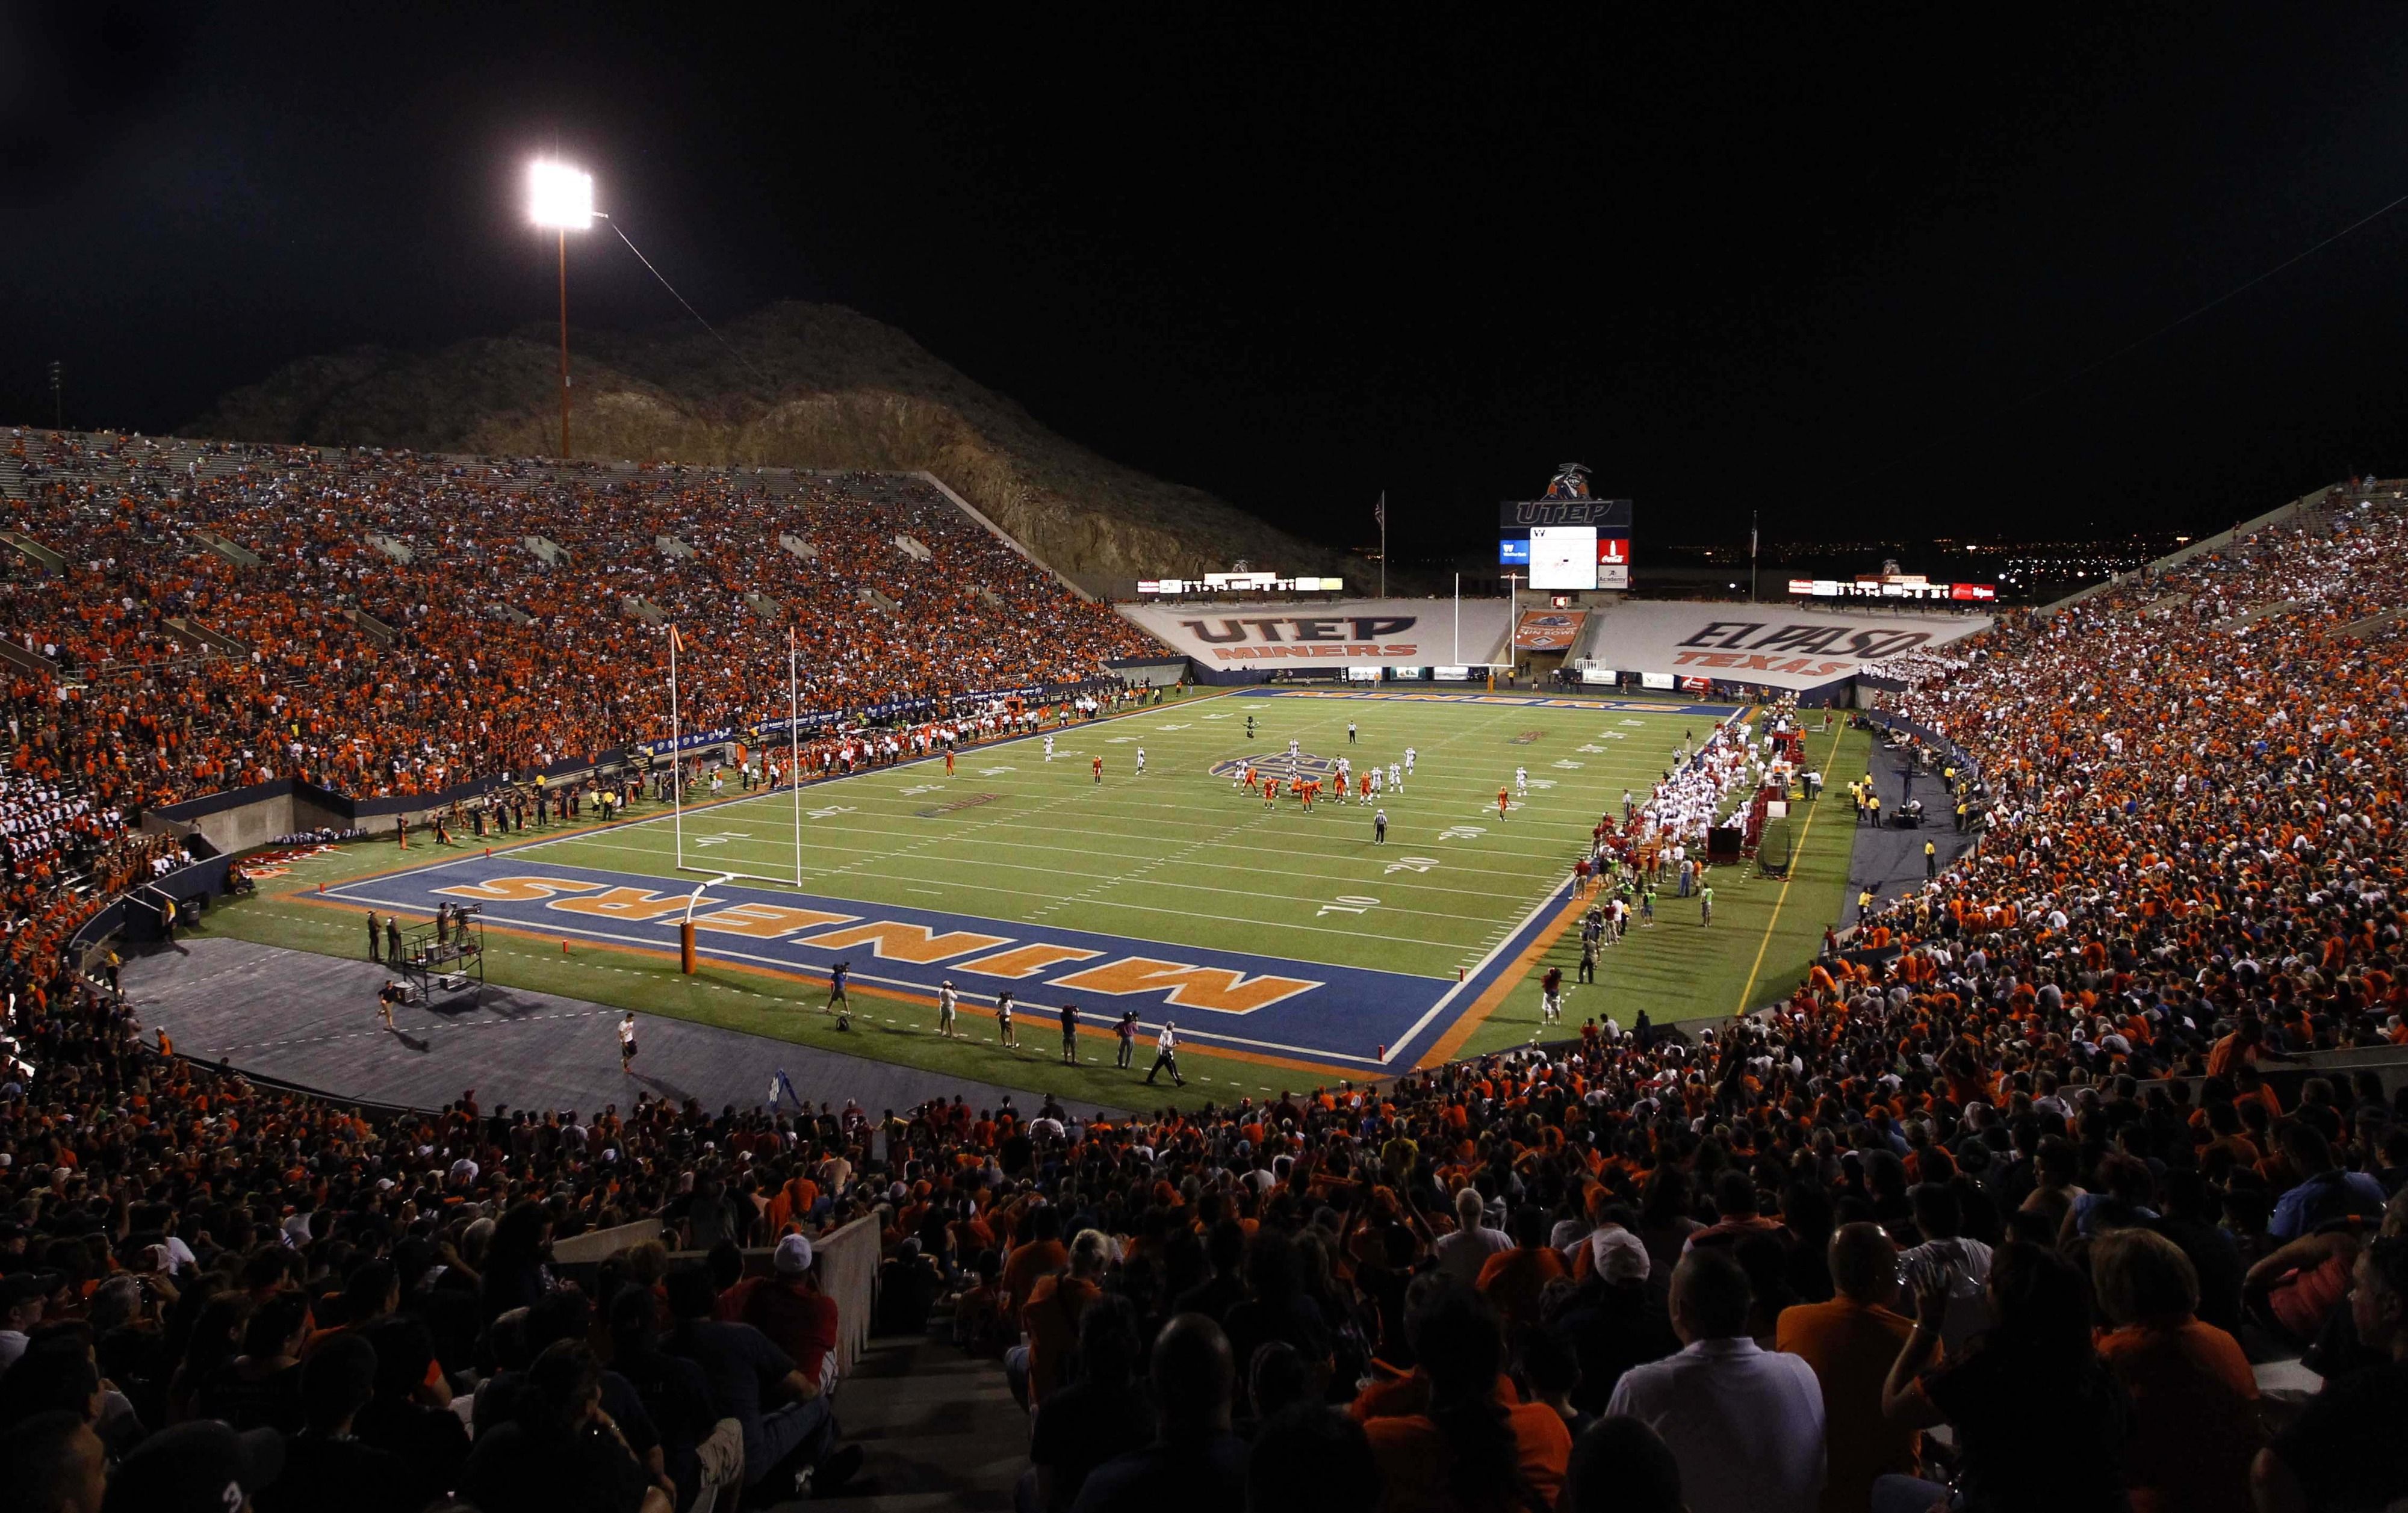 September 1, 2012; Dallas, TX, USA; A general view of the Sun Bowl Stadium during the football game between UTEP Miners and Oklahoma Sooners. Oklahoma won 24-7. Mandatory Credit: Jim Cowsert-US PRESSWIRE